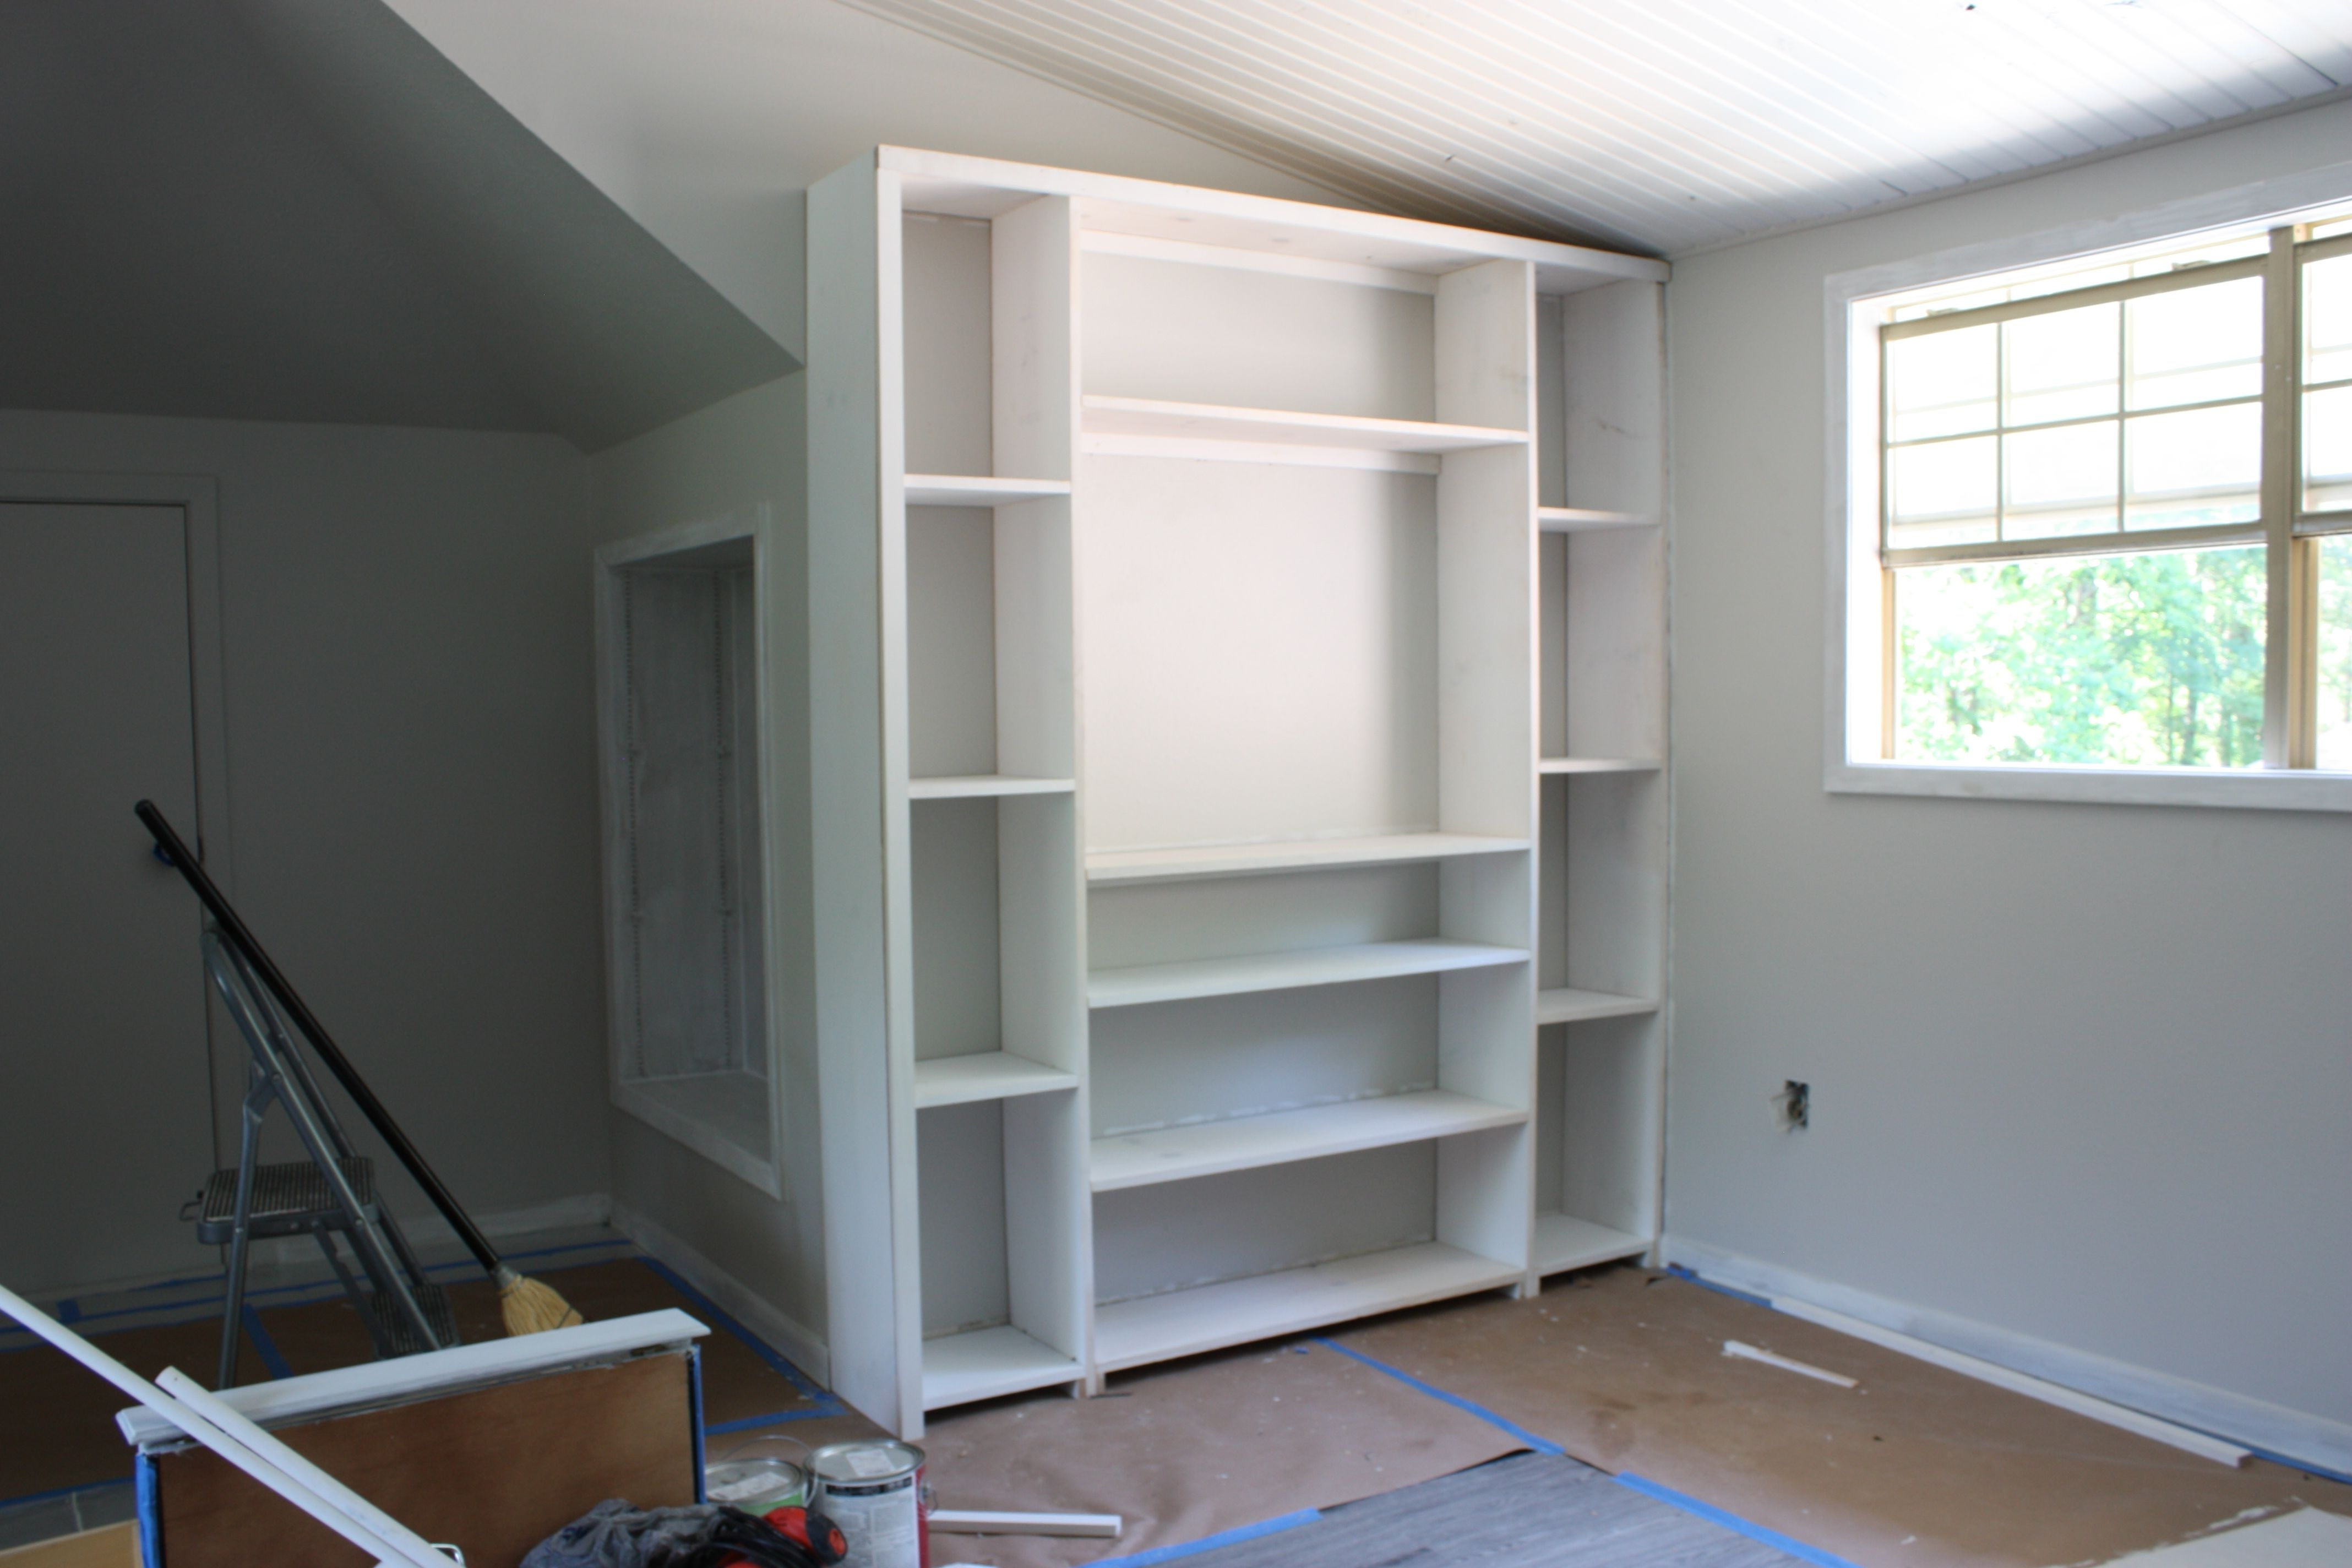 2017 Built In Bookcases Kits Intended For Shelves : Marvelous Charming Premade Built In Bookcases Floor To (View 1 of 15)